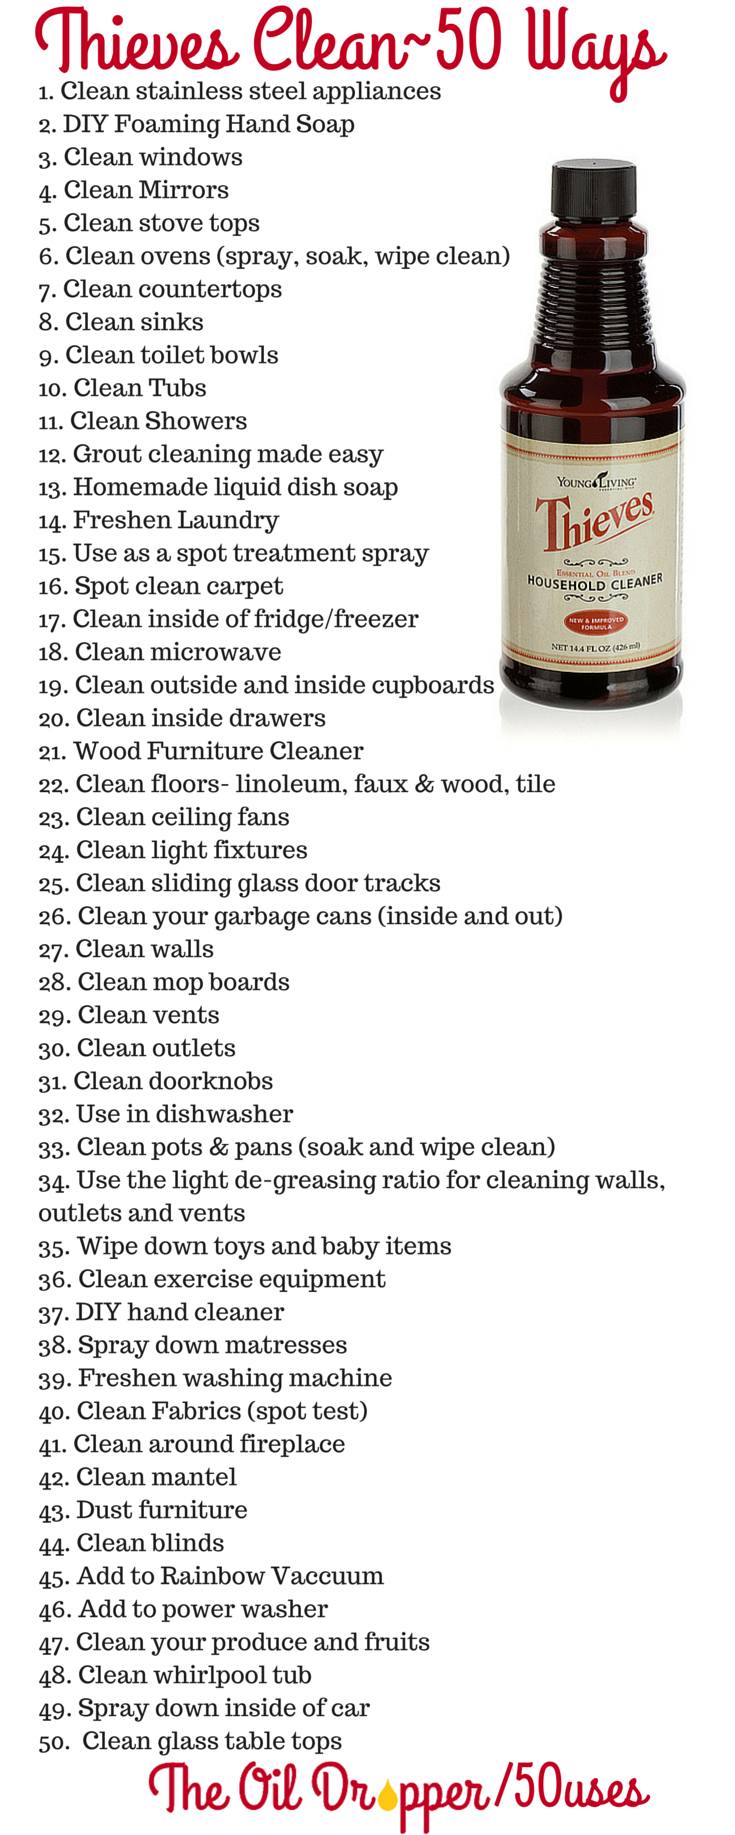 50 Uses for Thieves Household Cleaner | Household, Alternative and ...